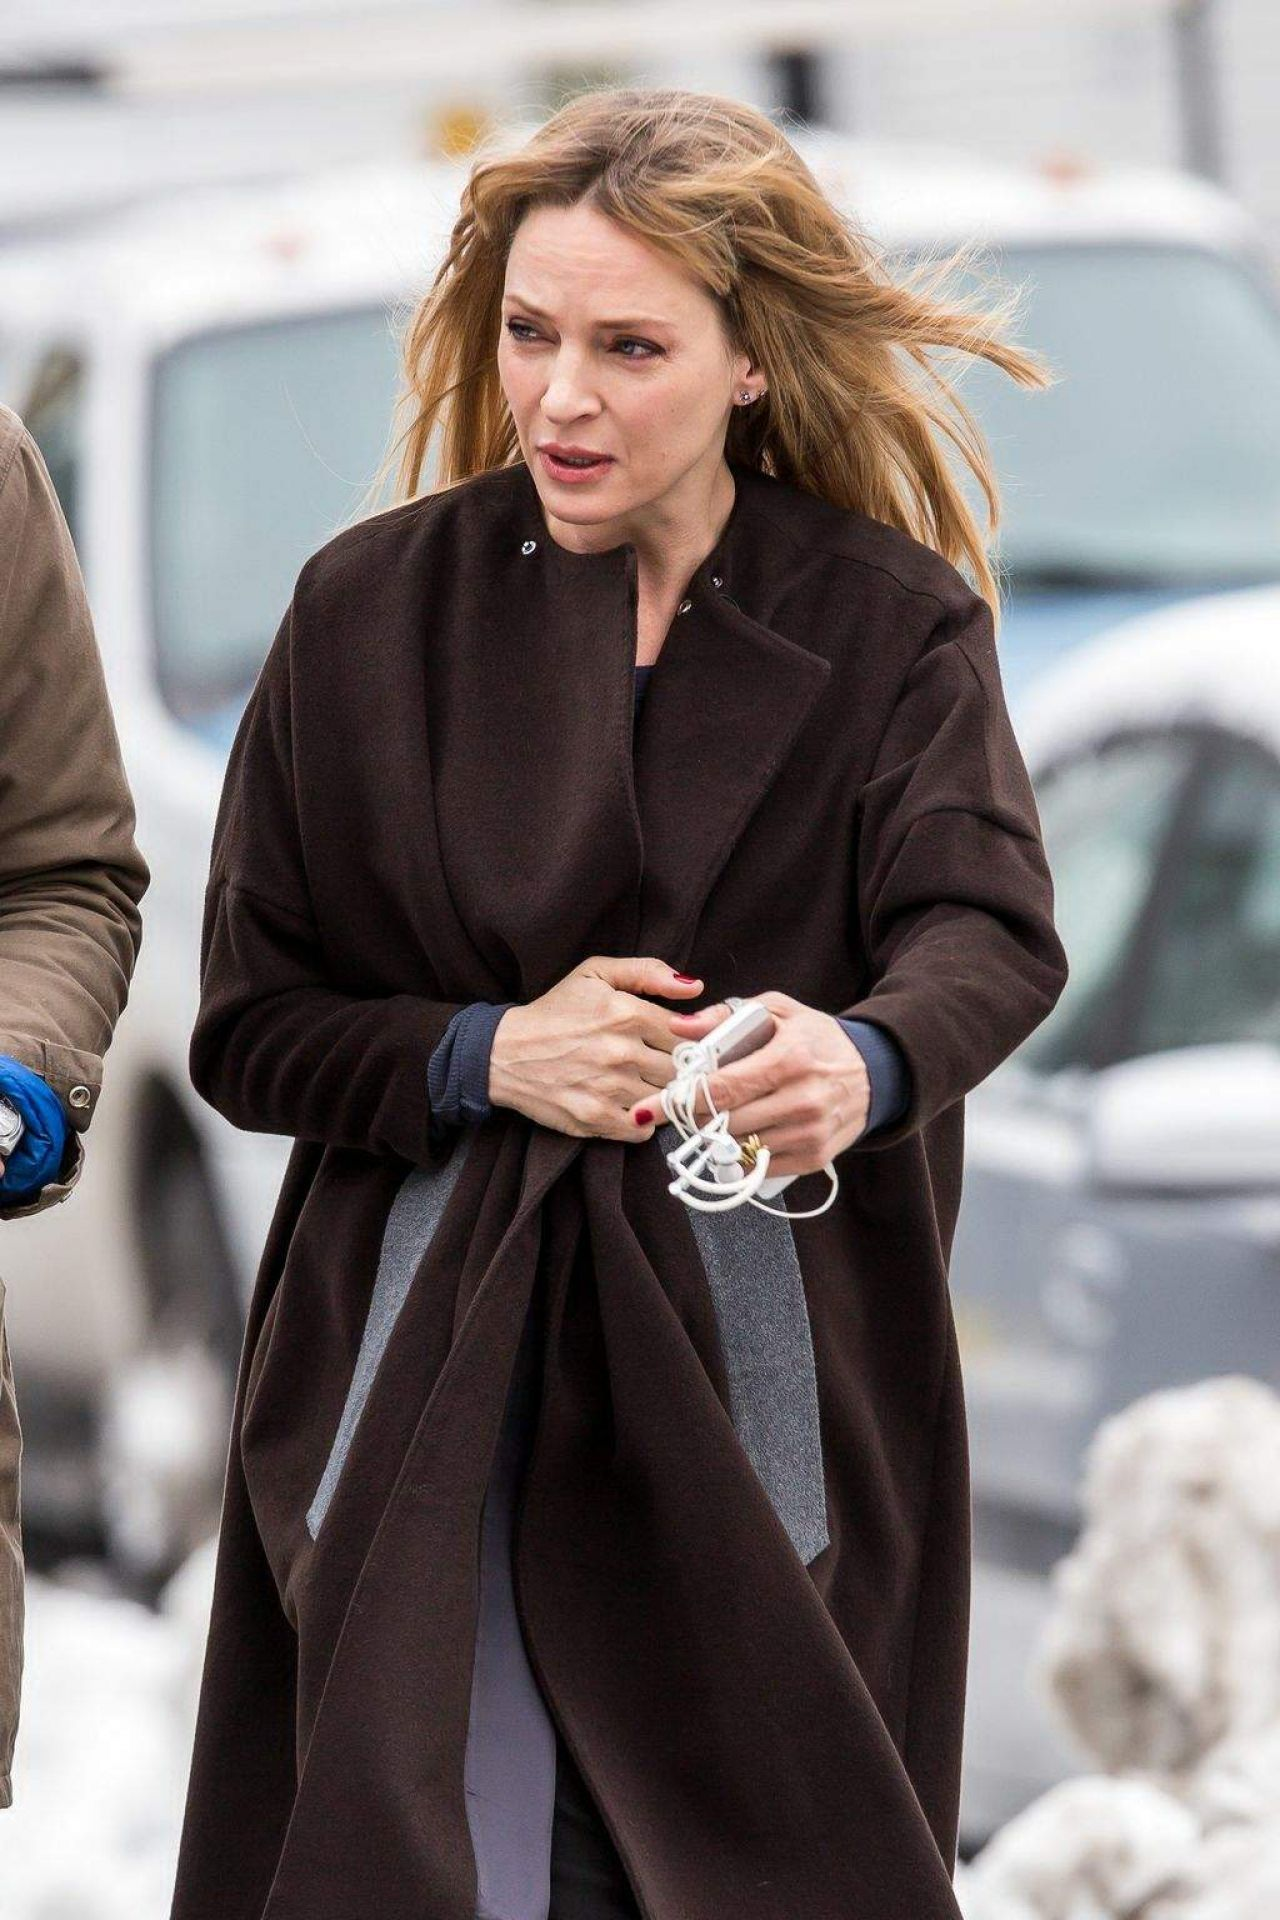 Uma Thurman At The Slap Set Photos In New York